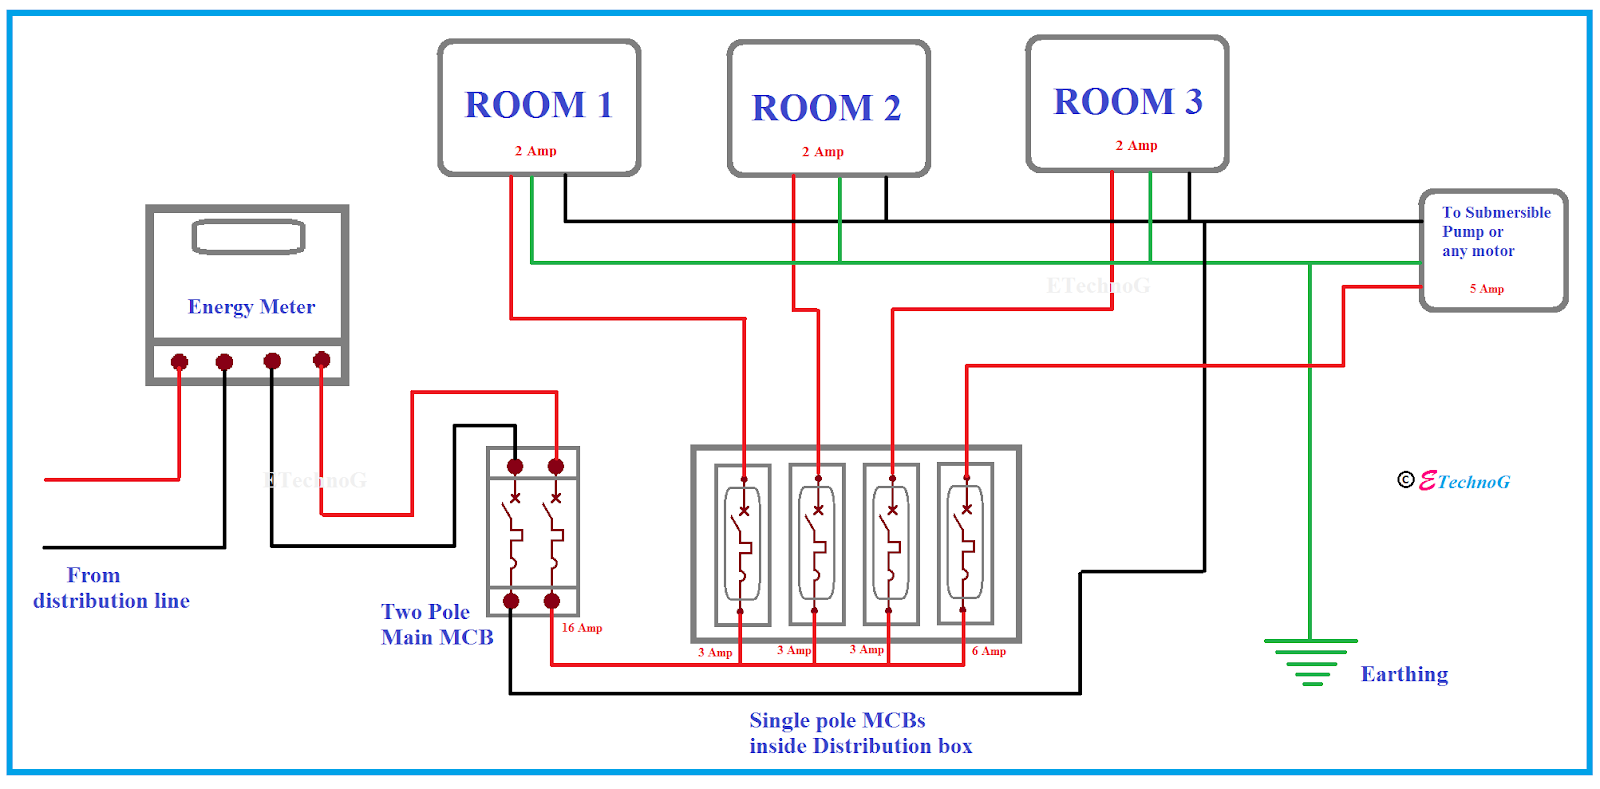 Room Electrical Wiring Diagram from 4.bp.blogspot.com